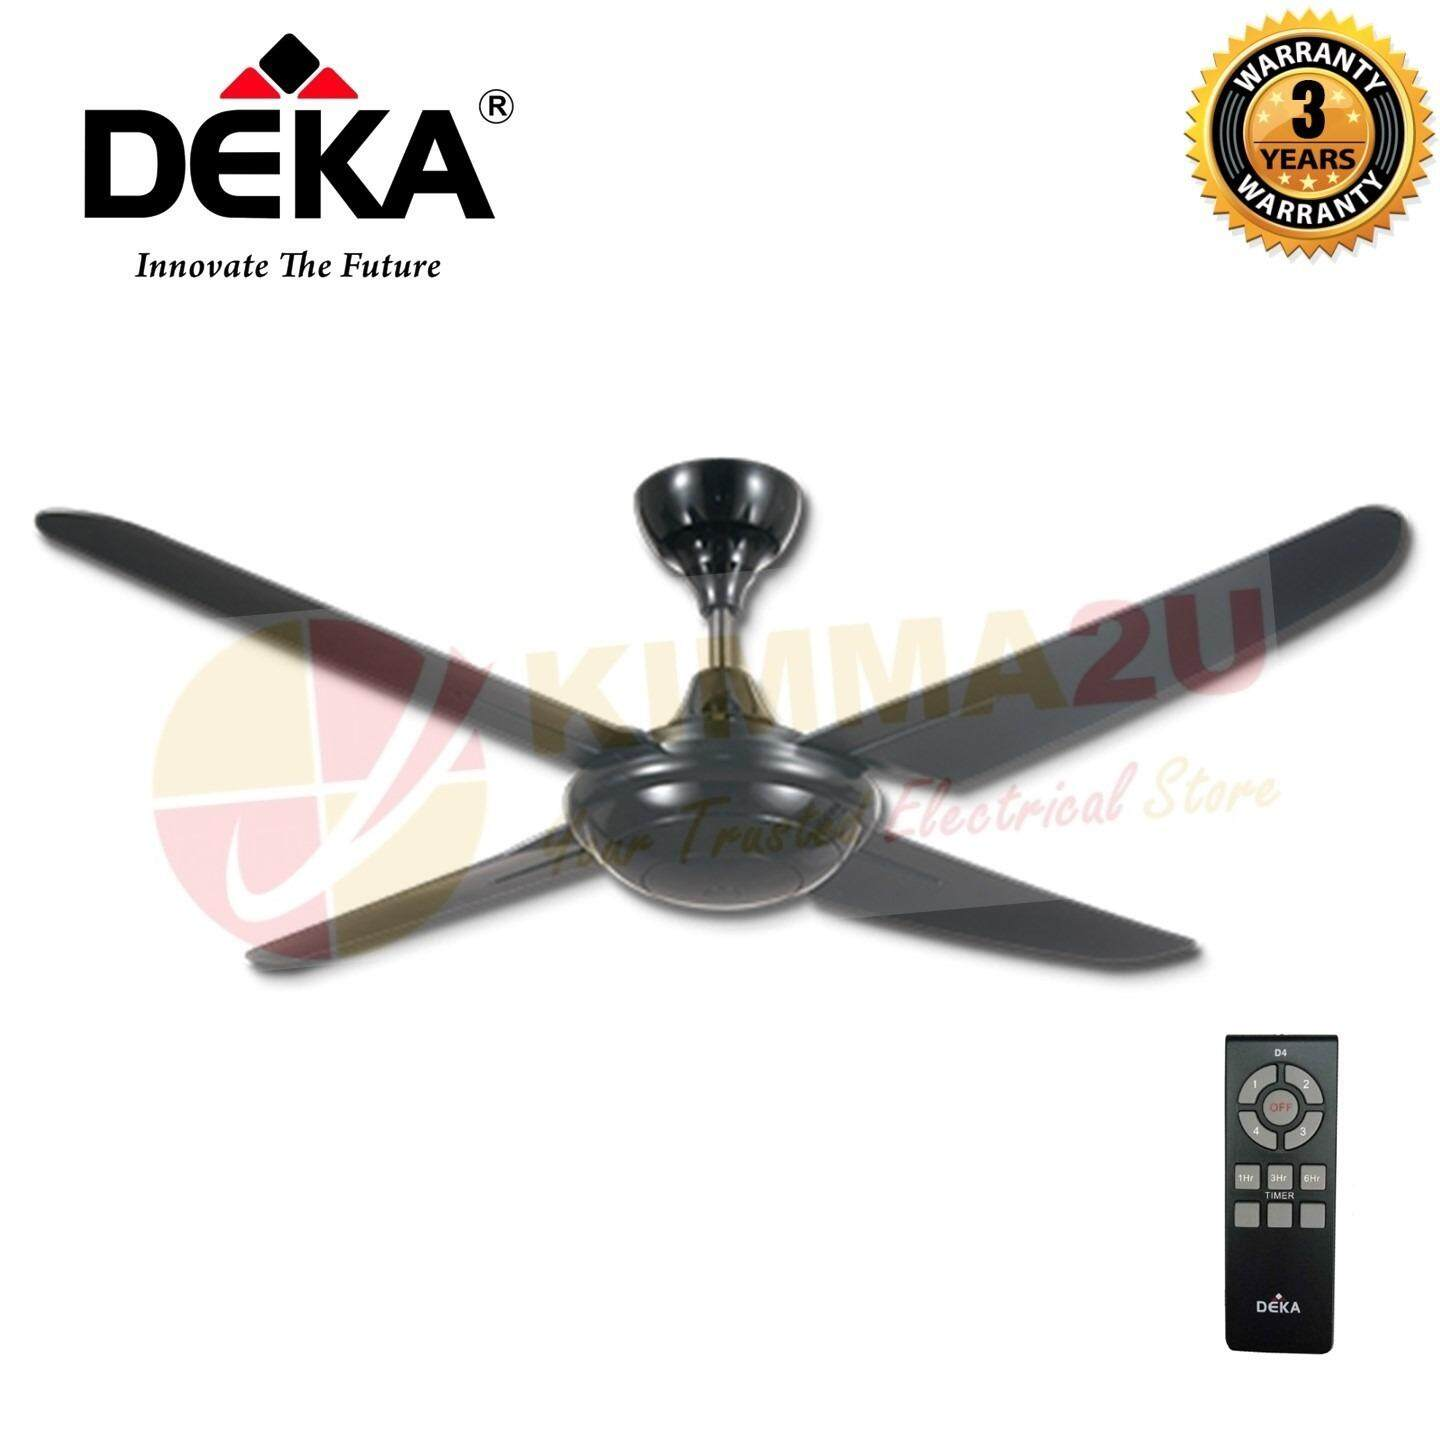 Deka cooling heating fans price in malaysia best deka cooling kronos deka f5 4p ceiling fan with remote control new model aloadofball Image collections